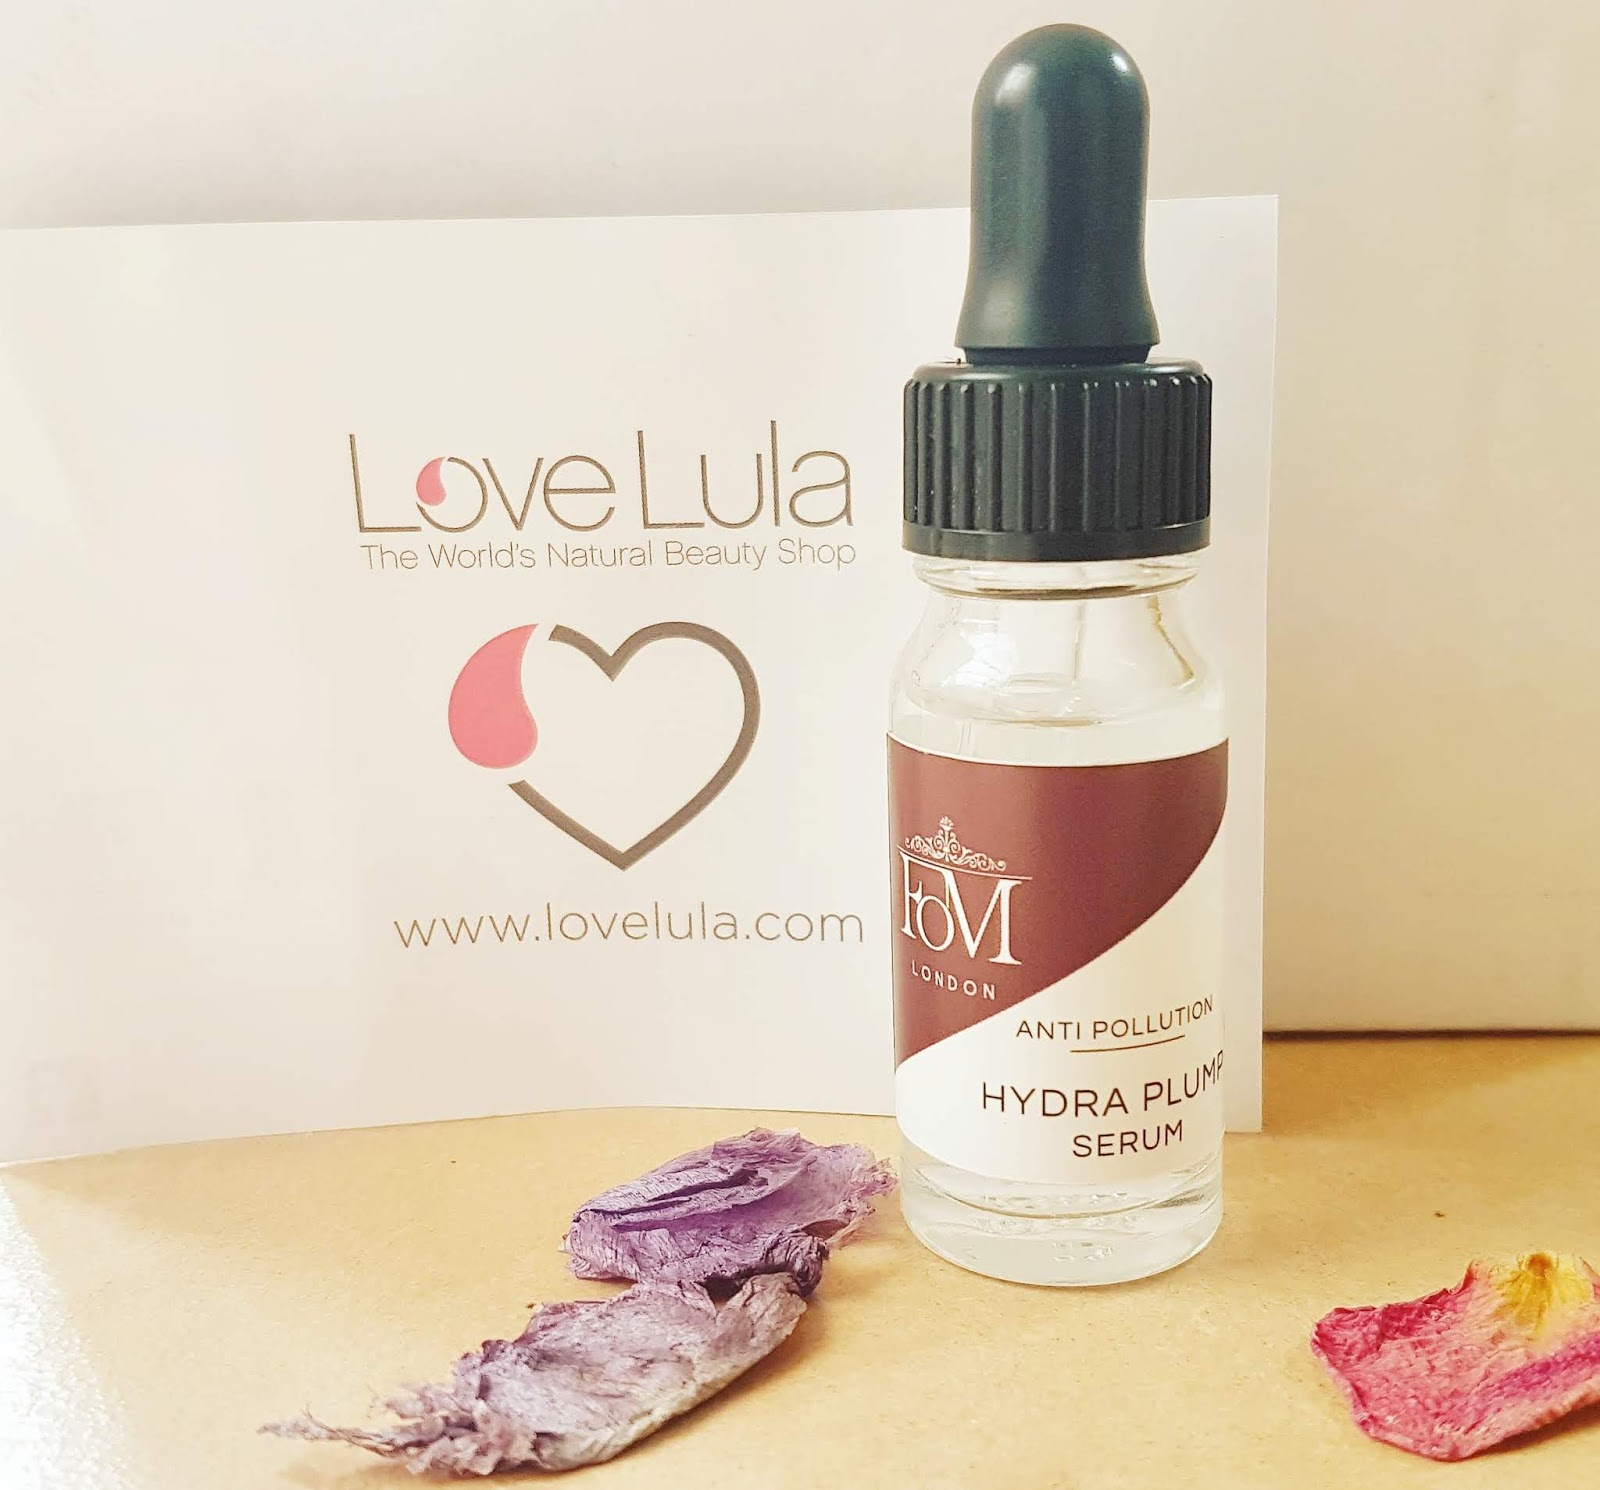 Love Lula Beauty Box - FOM Hydra Plump Serum Review